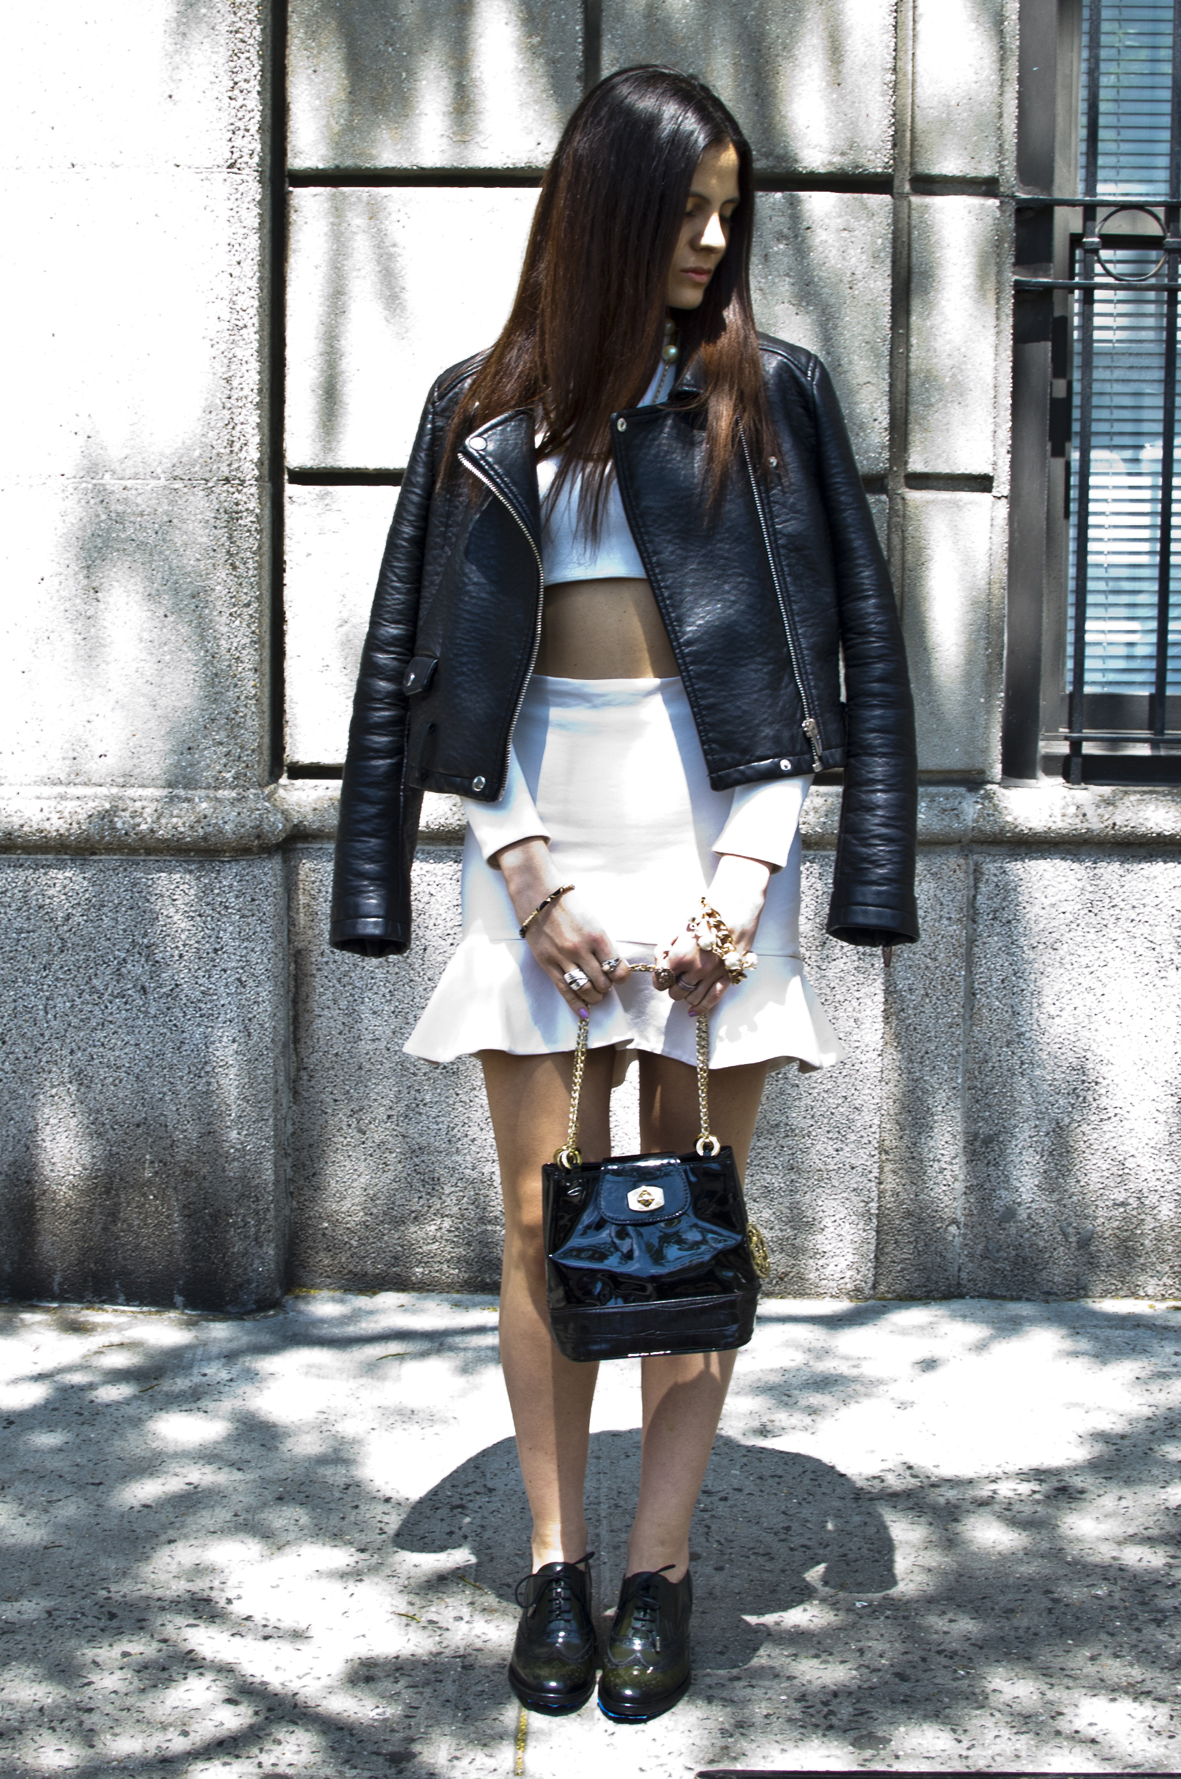 7 Oxfords - 2